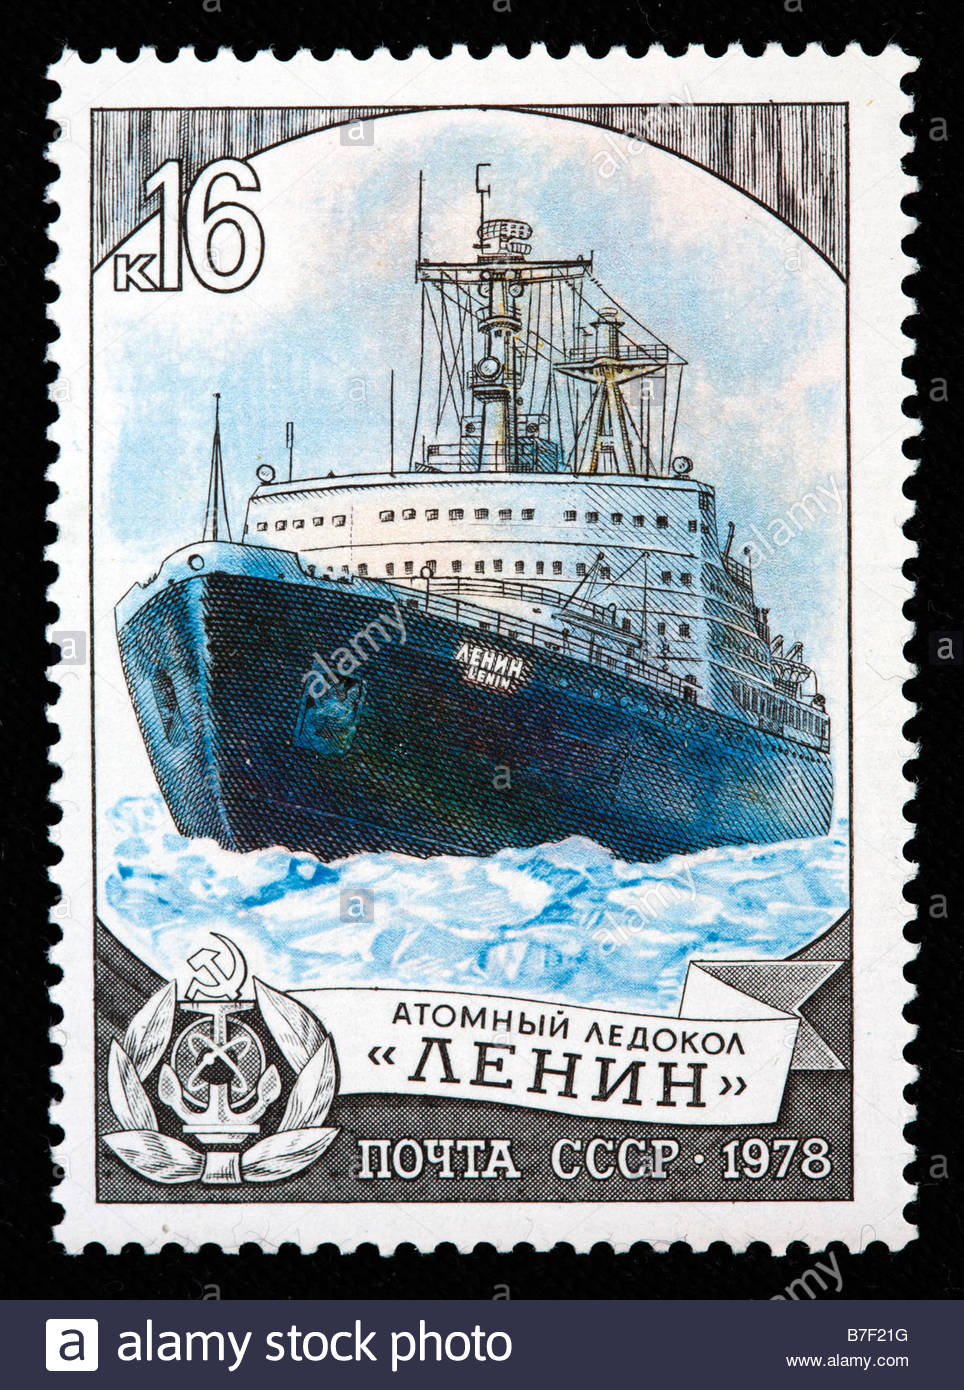 Russian nuclear powered icebreaker 'Lenin' (1957), postage stamp, USSR, Russia, 1978 - Stock Image